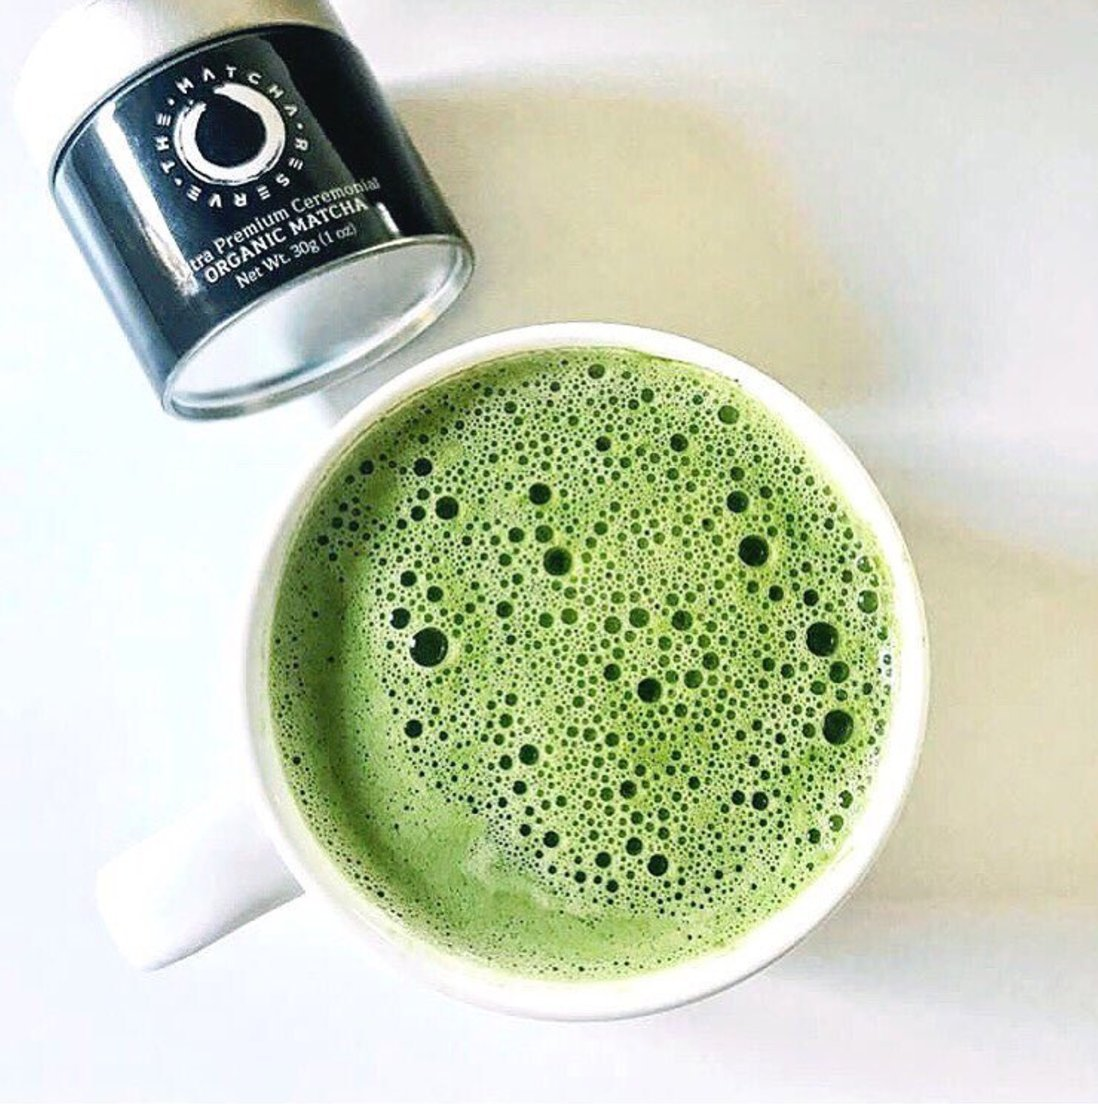 Ultra Premium Organic Ceremonial Matcha, USDA Certified, THE MATCHA RESERVE